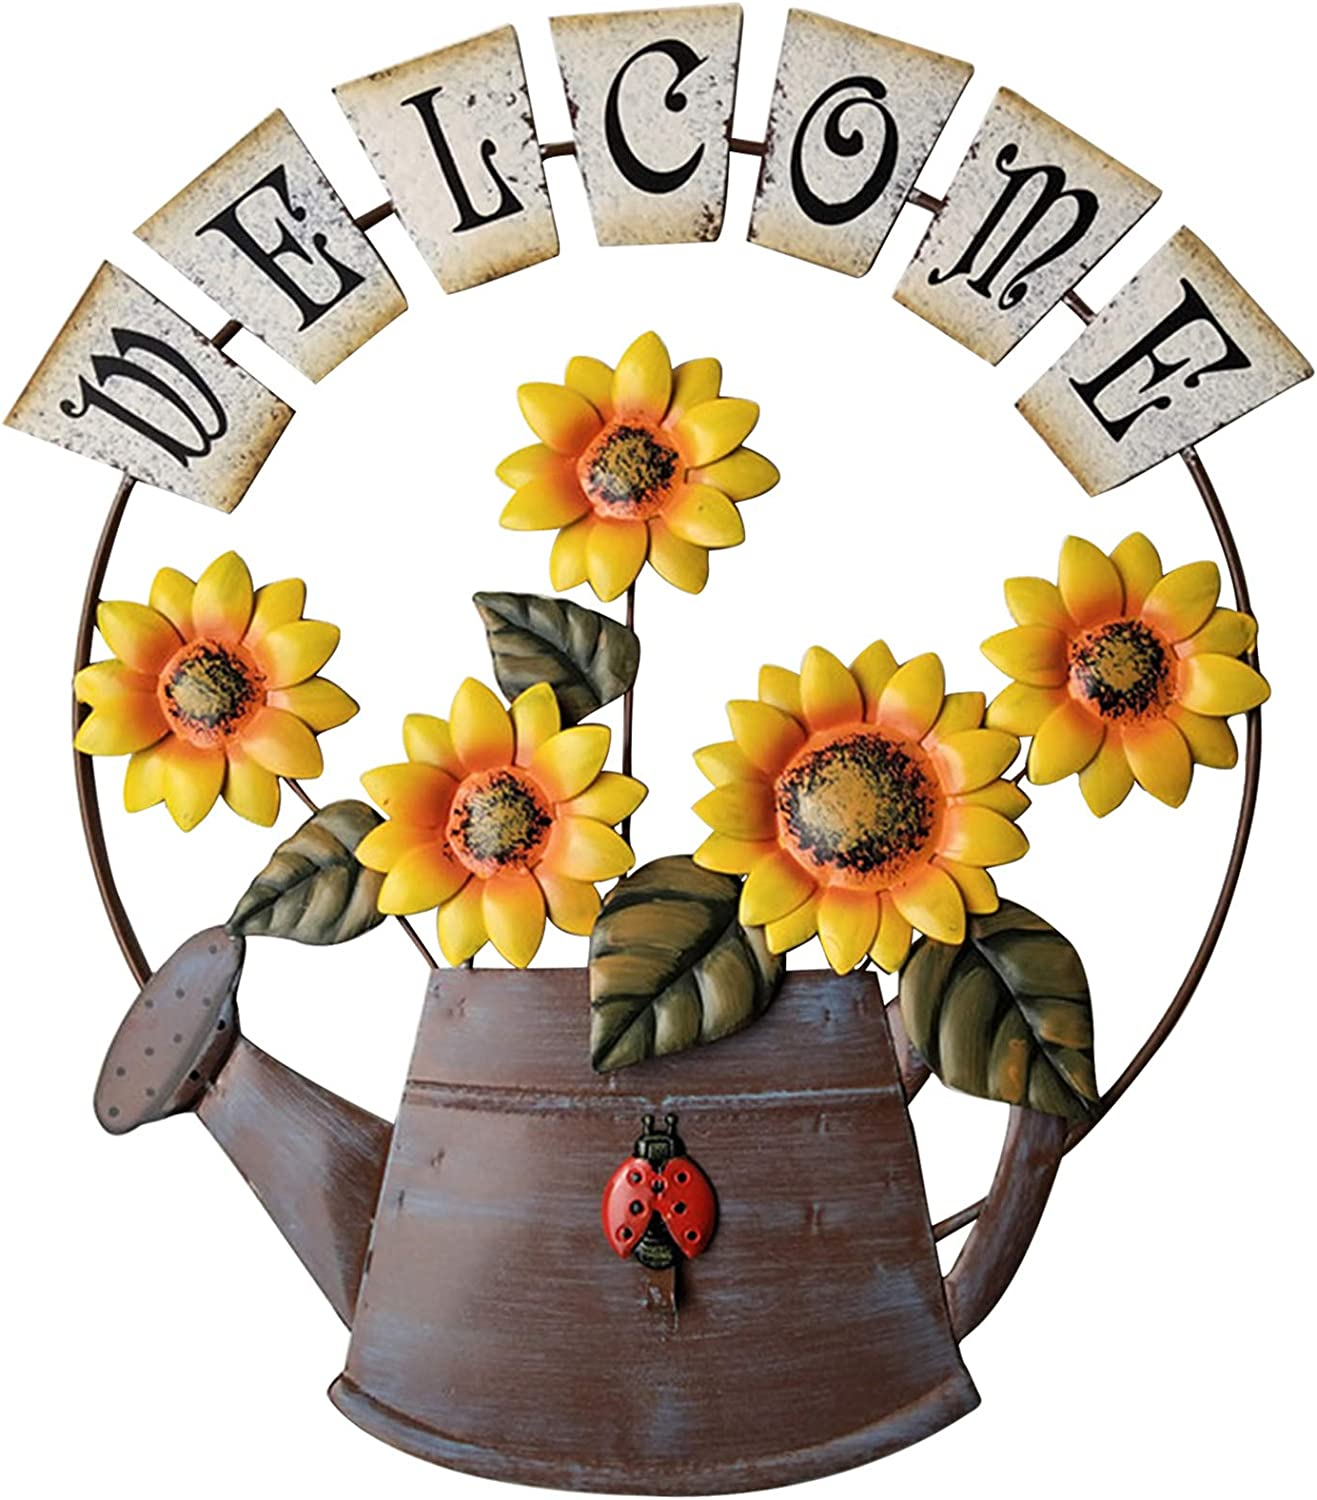 TISOSO Rustic Sunflower Welcome Sign Watering Can Design Garden Themed Welcome Wall Plaque Farmhouse Door Hanging Sign for Outdoor Home Bathroom Wall Art Yard Entryway Decor Decorative 15.5X14Inch